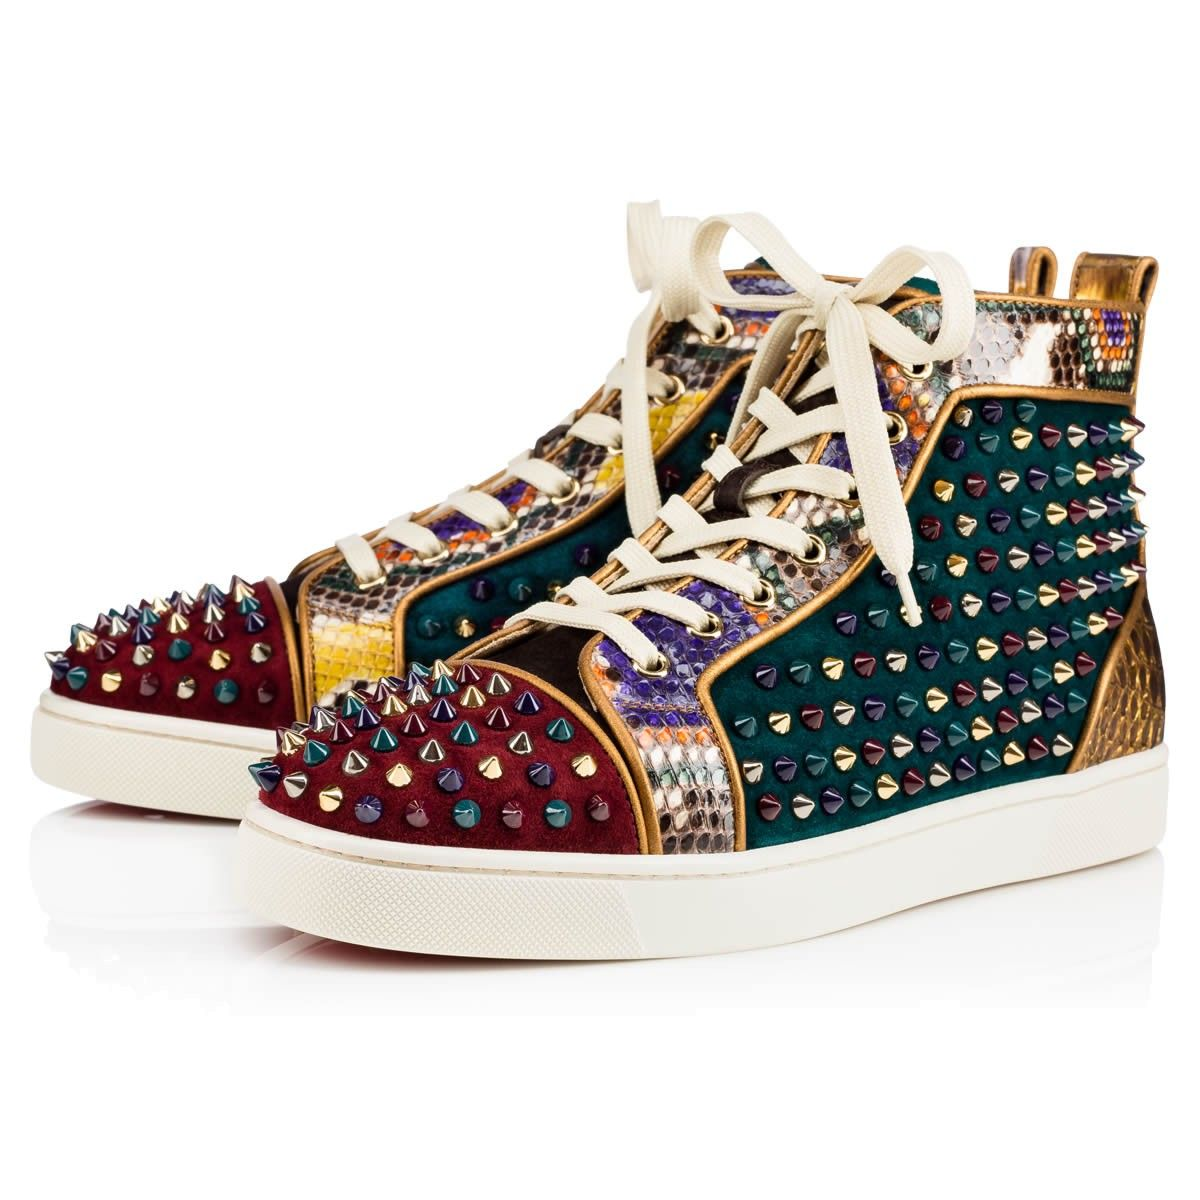 aa18e573de1 CHRISTIAN LOUBOUTIN Louis Orlato Veau Velours Python Spikes Multicolor  Python - Men Shoes - Christian Louboutin.  christianlouboutin  shoes